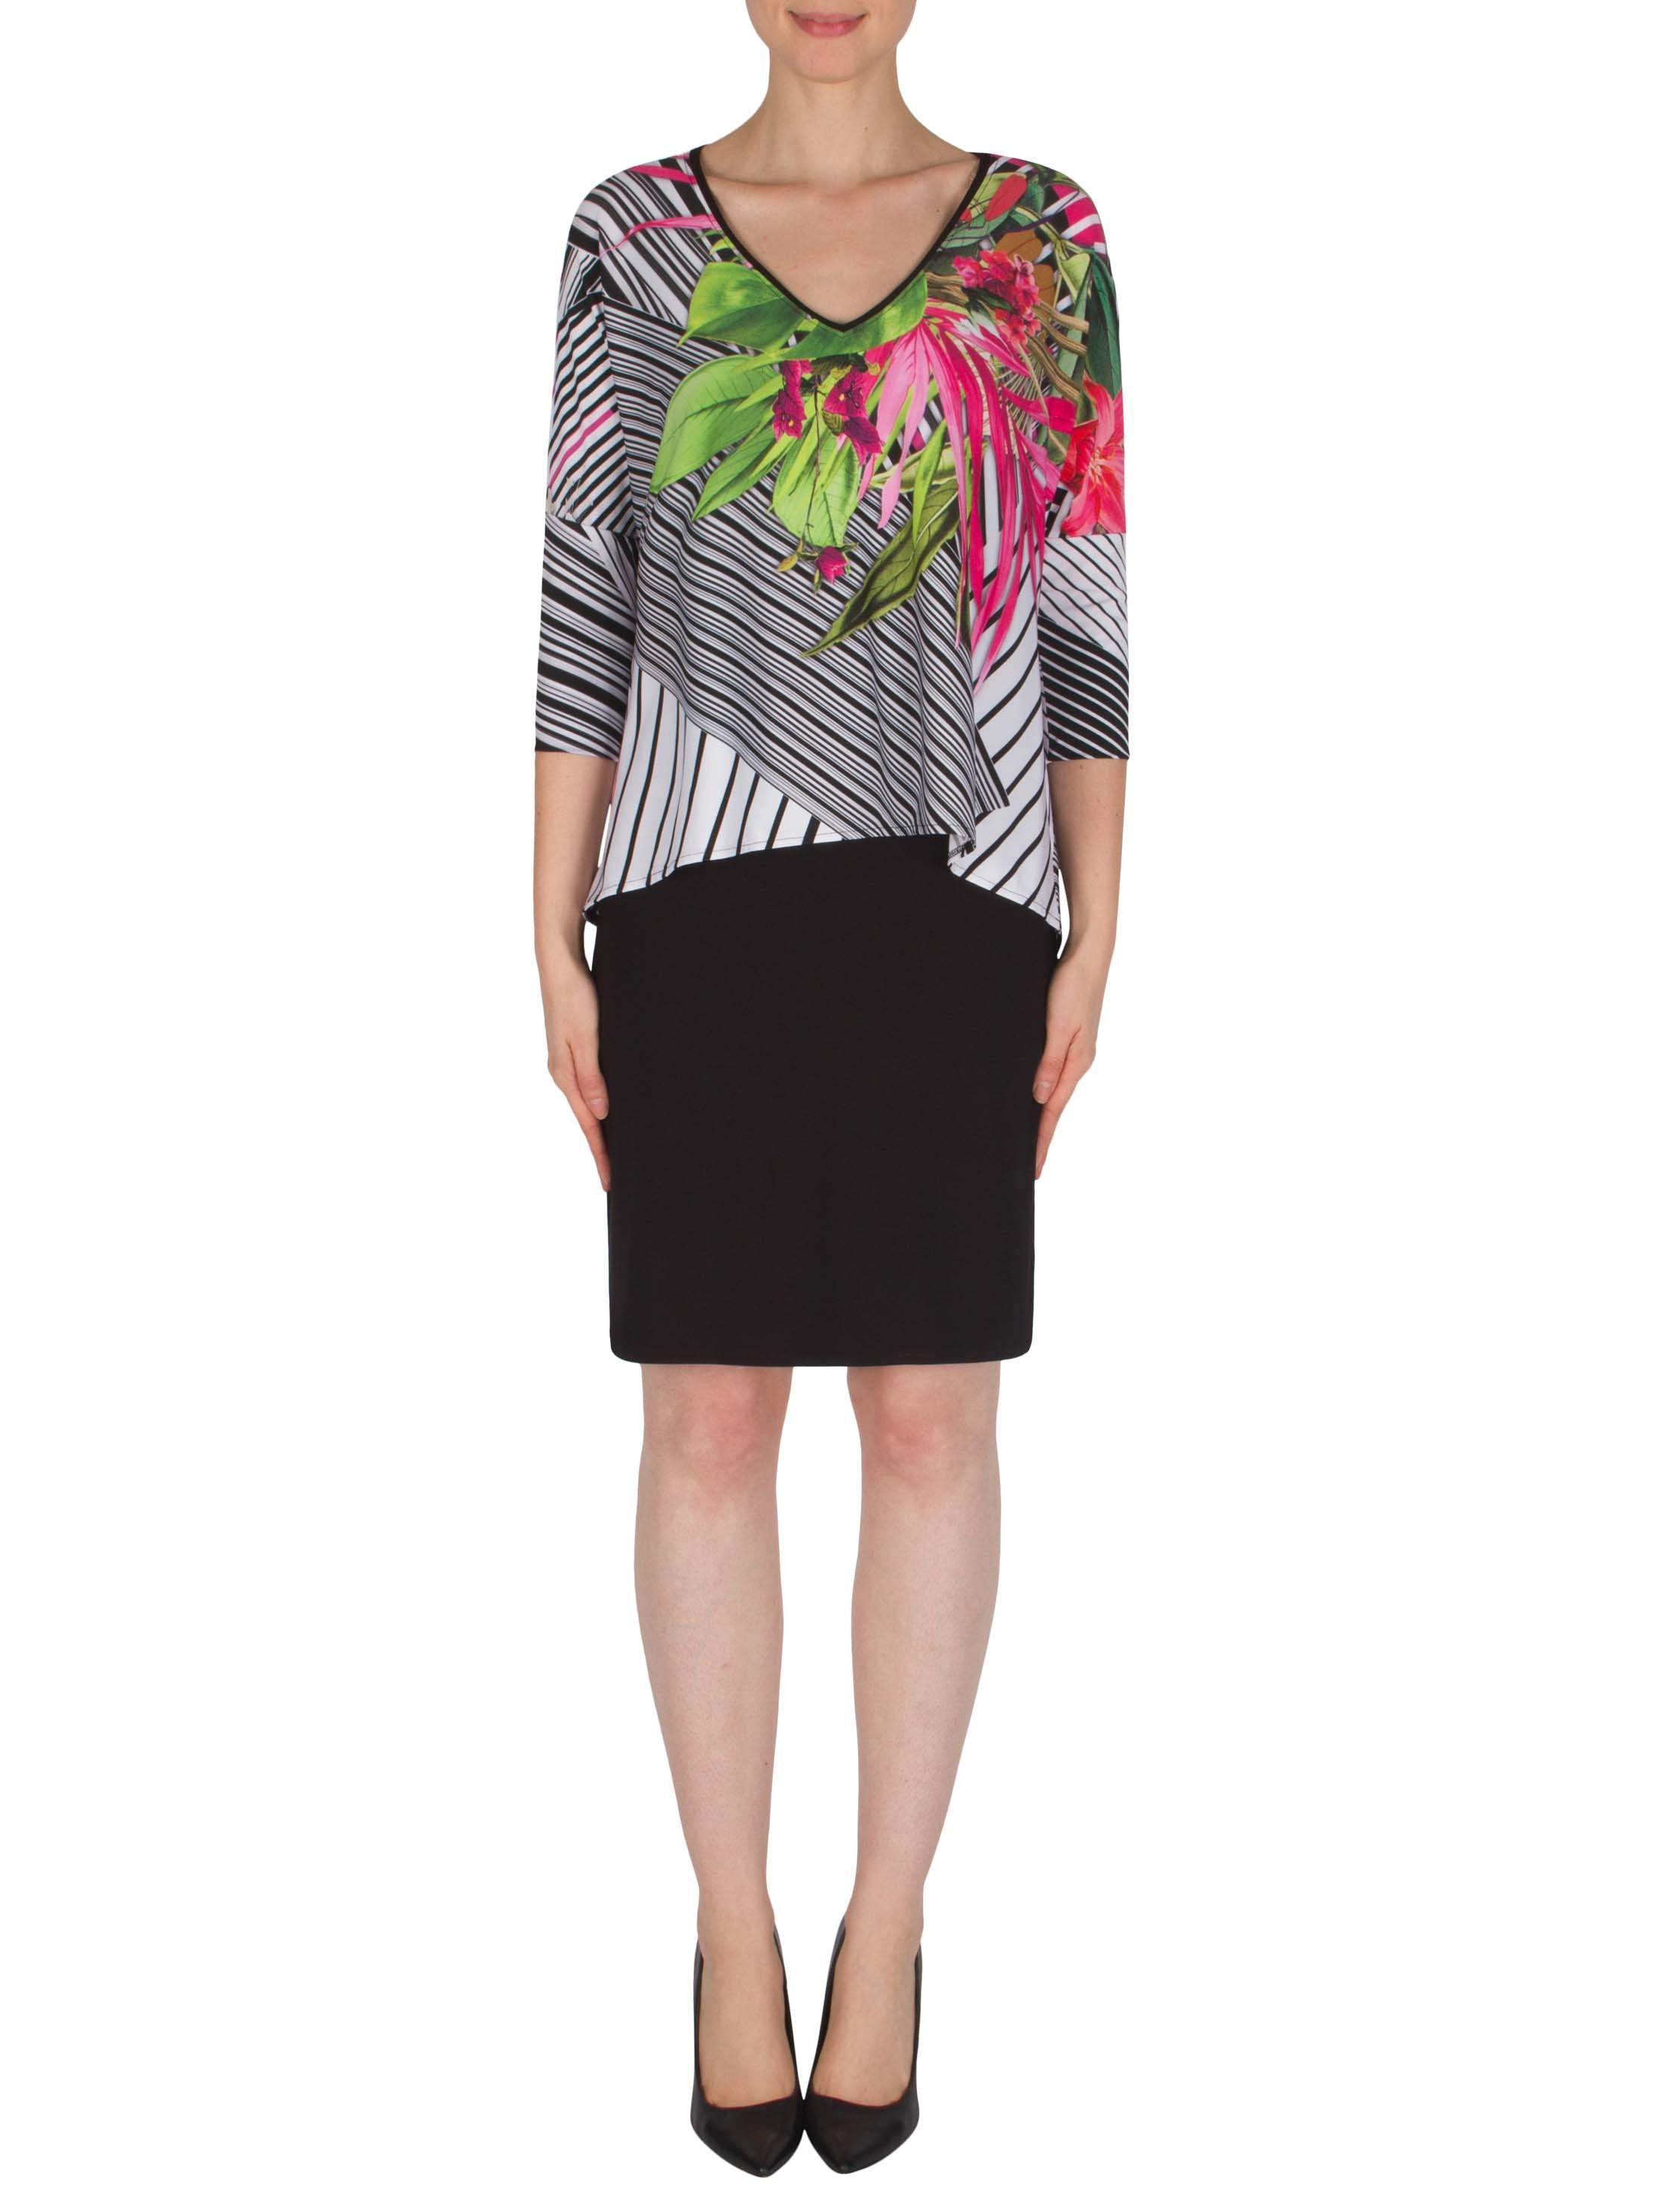 Joseph Ribkoff Black/White/Pink Dress with Printed Over layer